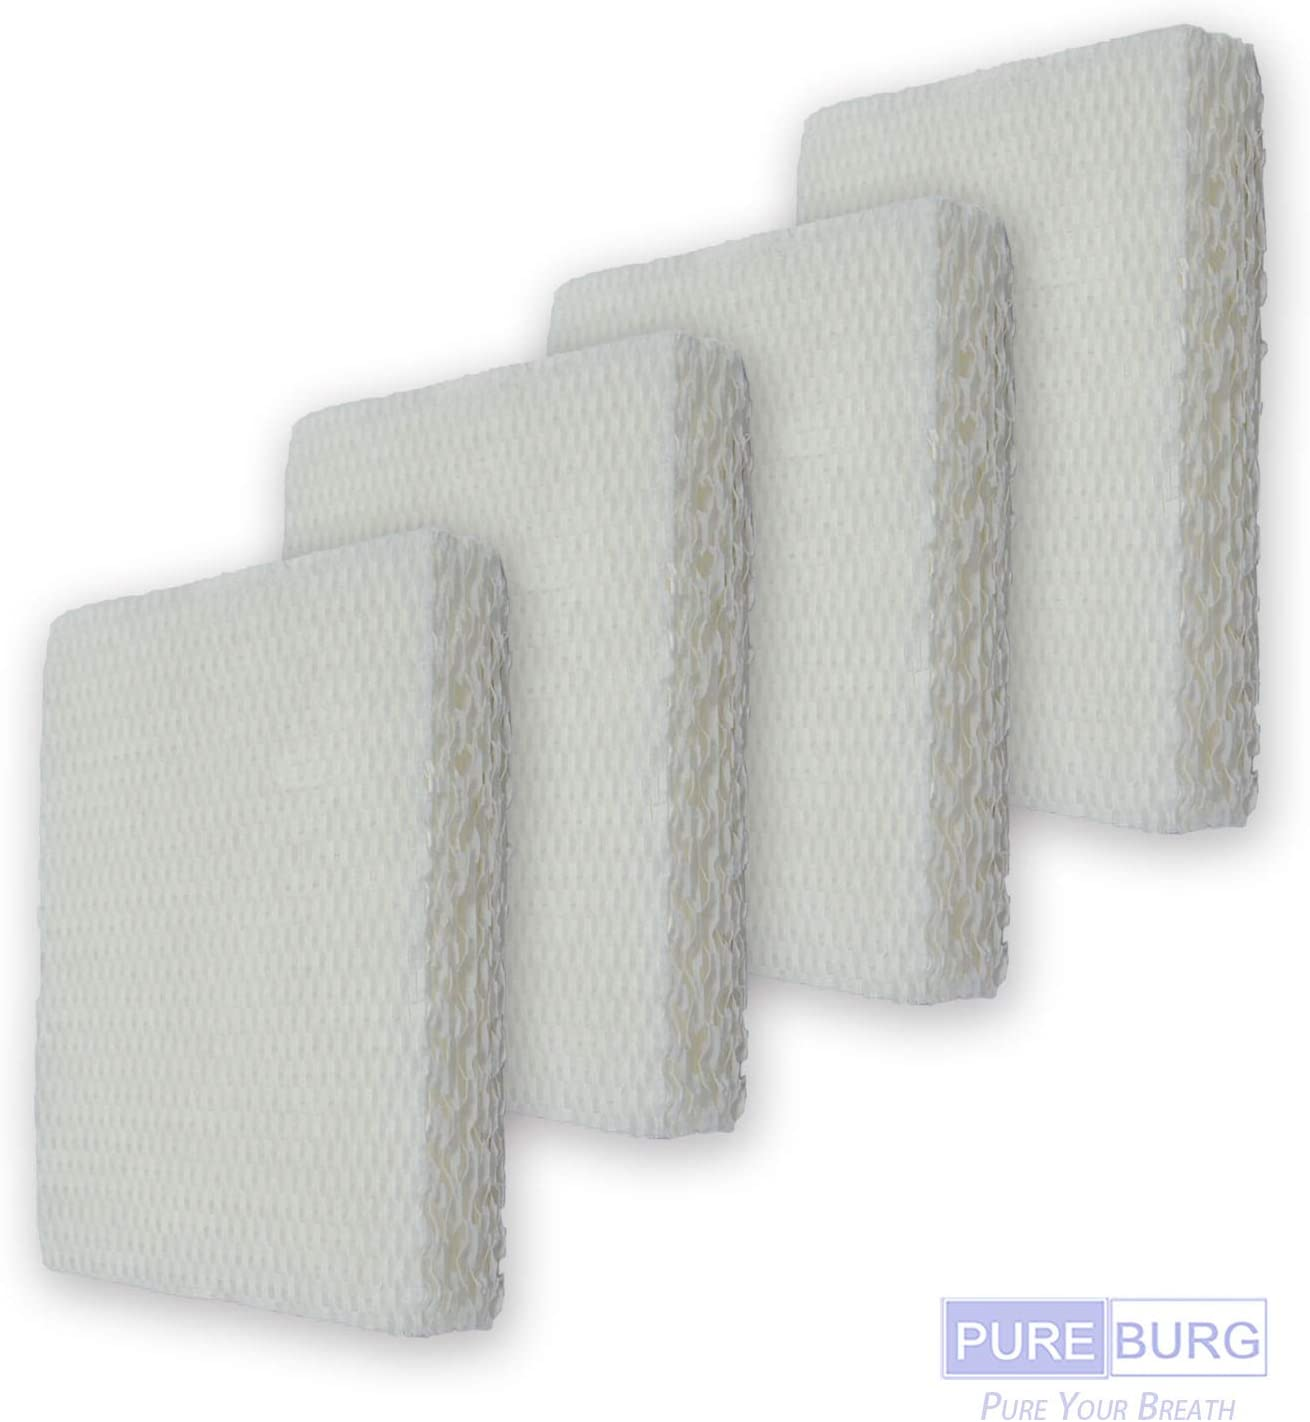 PUREBURG 4-Pack Replacement Humidifier Wick Filters Compatible with Honeywell HFT600 Fits HEV615 and HEV620 Series Top Fill Tower humidifier,Filter T